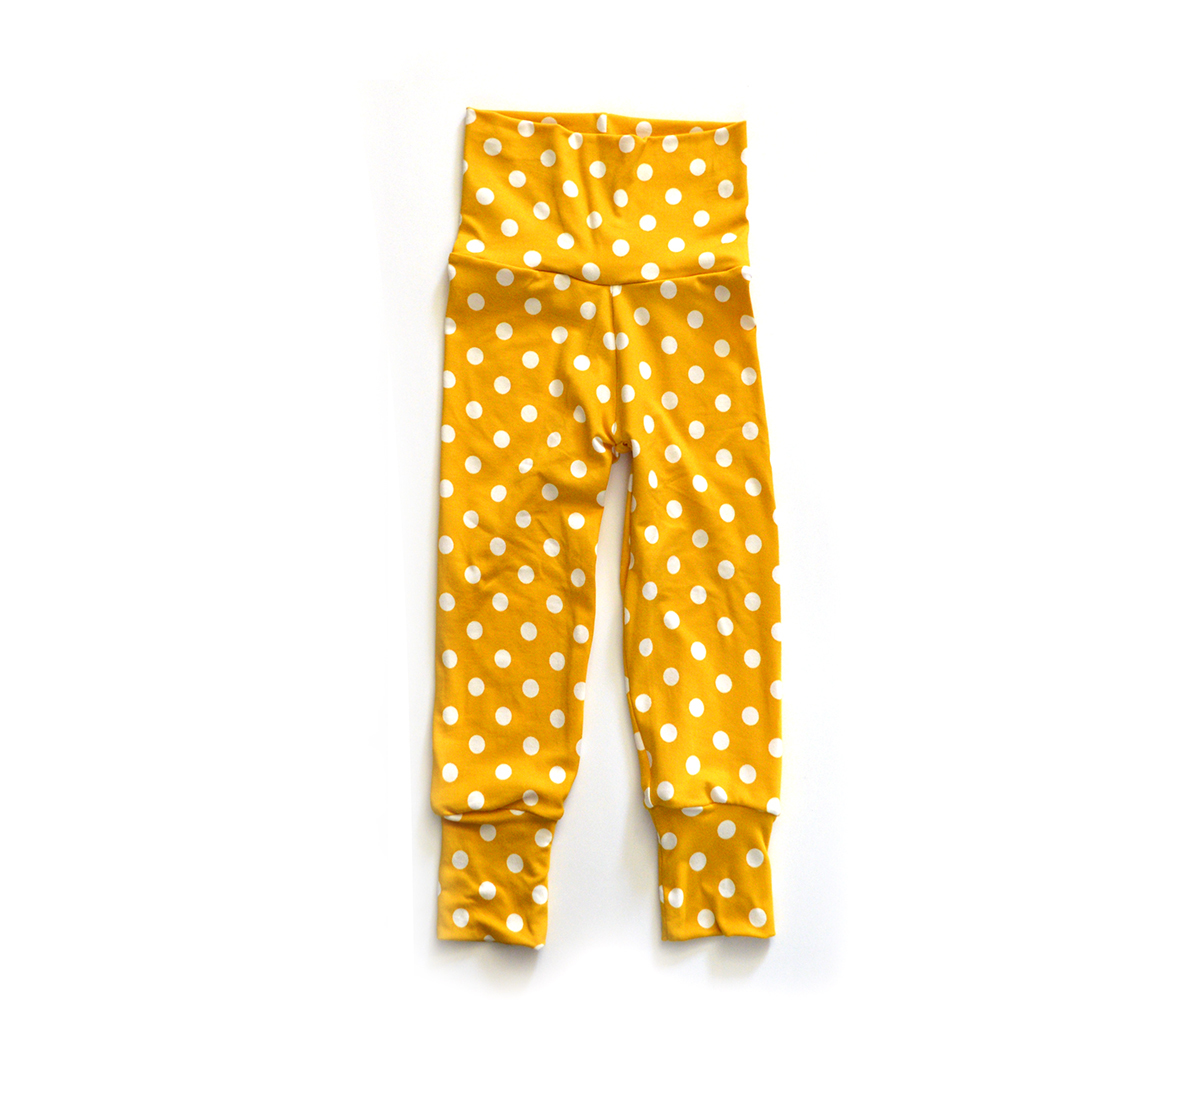 Little Sprout One-Size Pants™ Golden Dot - Stretch 00906